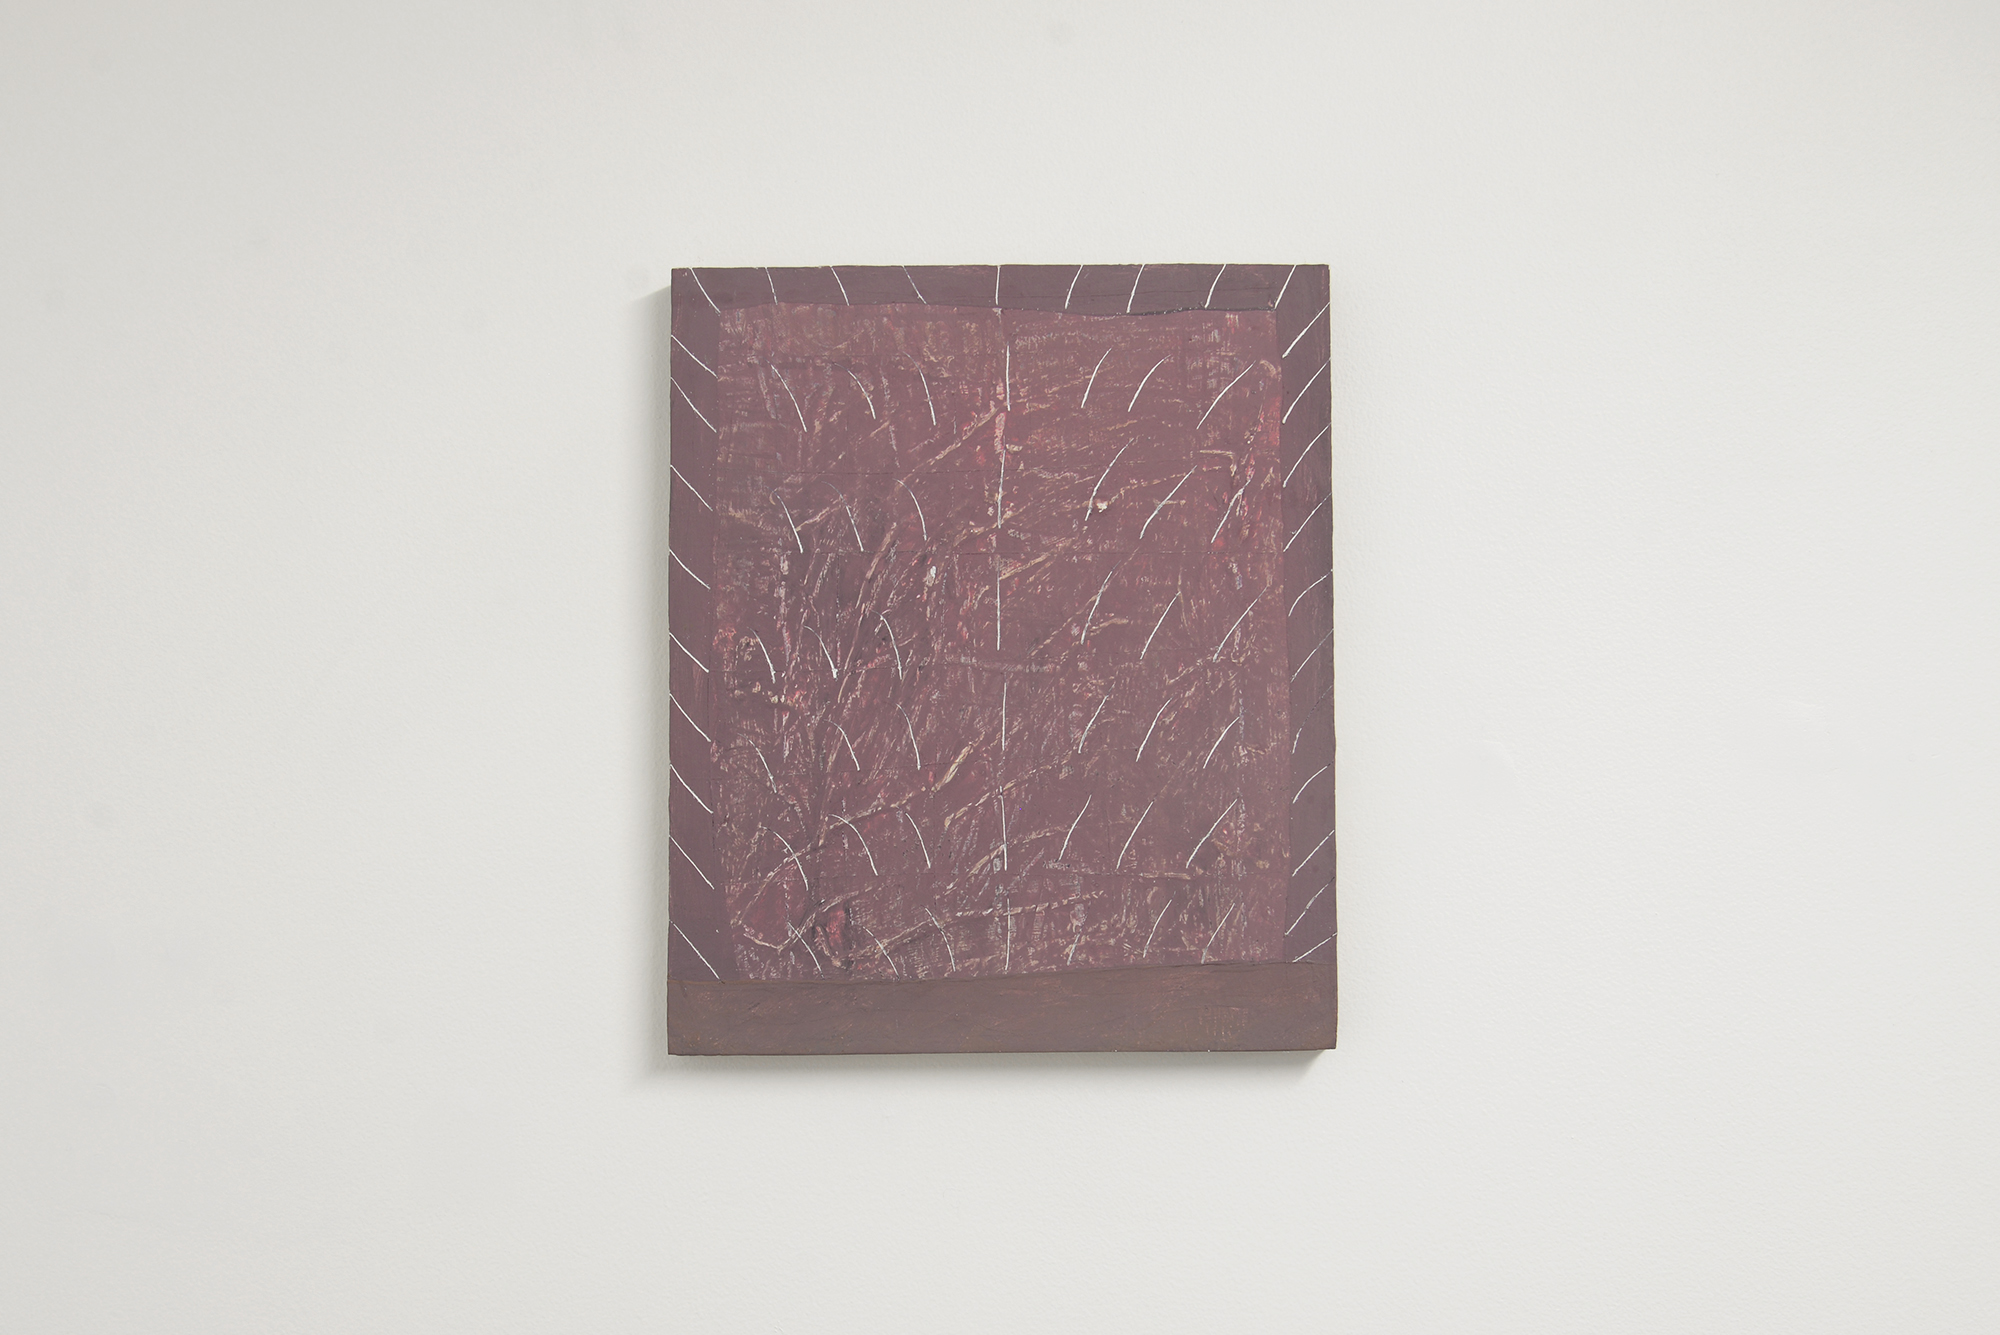 Loki Groves  En Exp 52 A damage and juncture  2017 acrylic on particle board